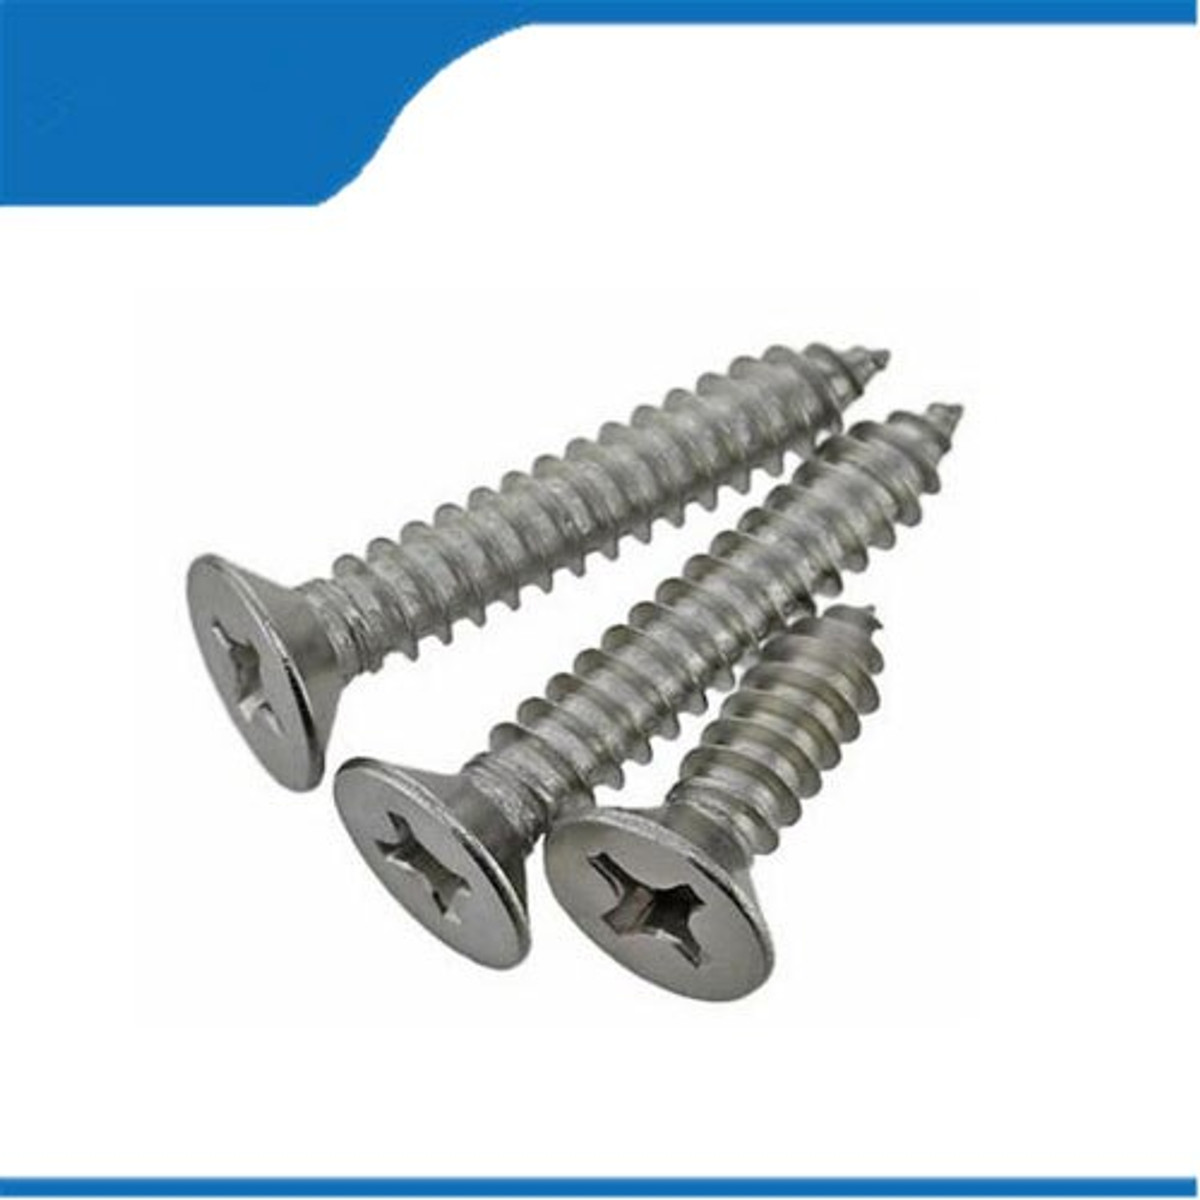 8 X 3/4 Sheet Metal Screw. Stainless Steel, Countersunk 82°. Phillips A Point